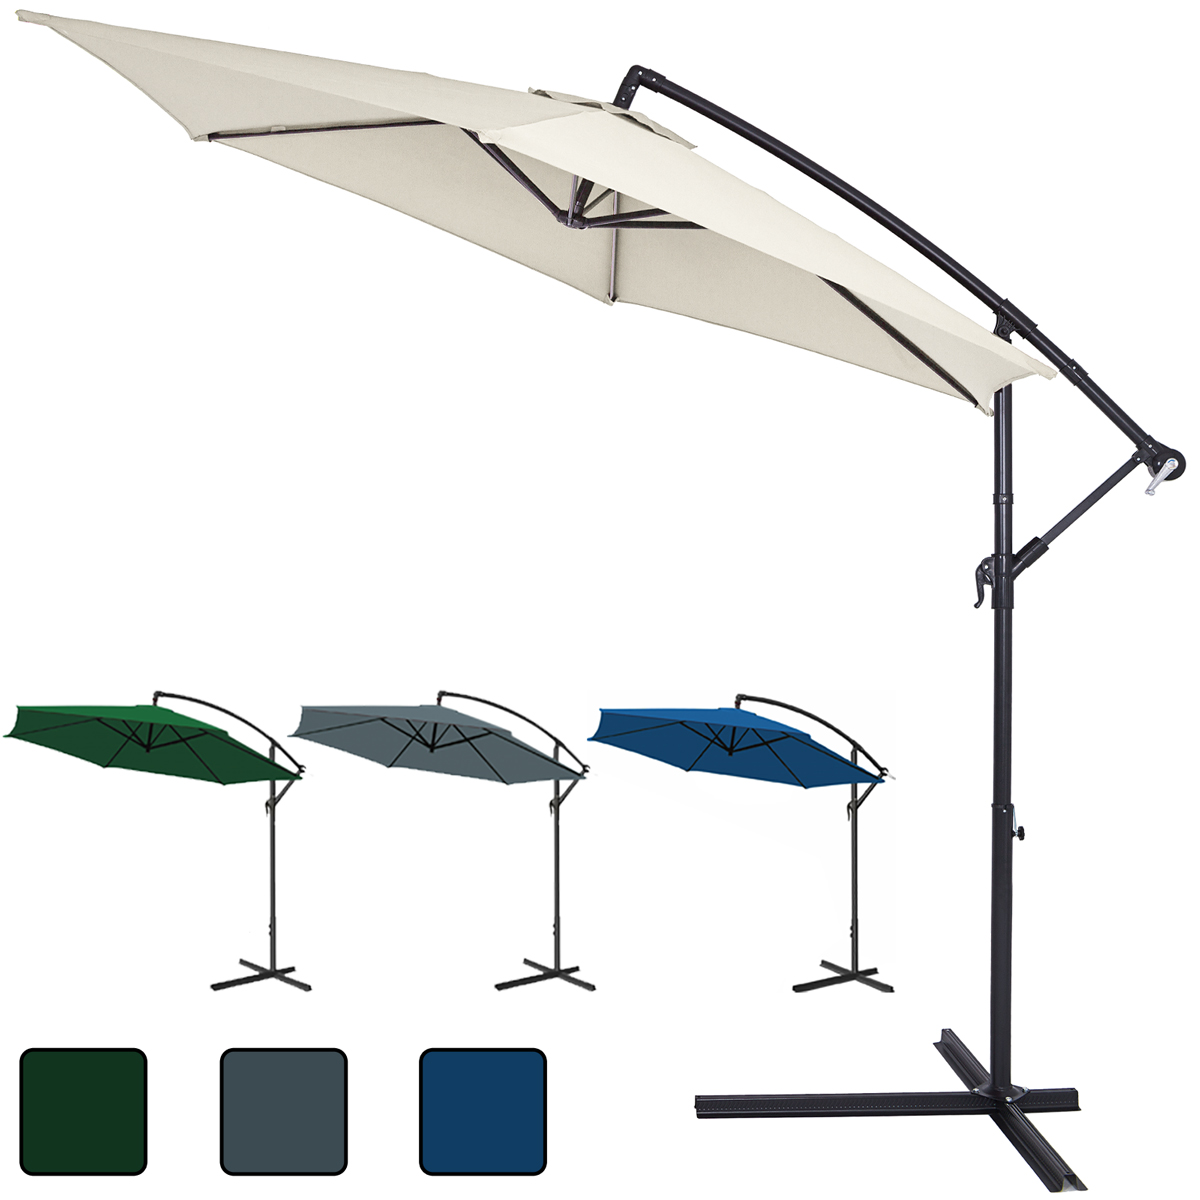 garden sun parasol large 350cm aluminium patio sun umbrella with crank handle ebay. Black Bedroom Furniture Sets. Home Design Ideas